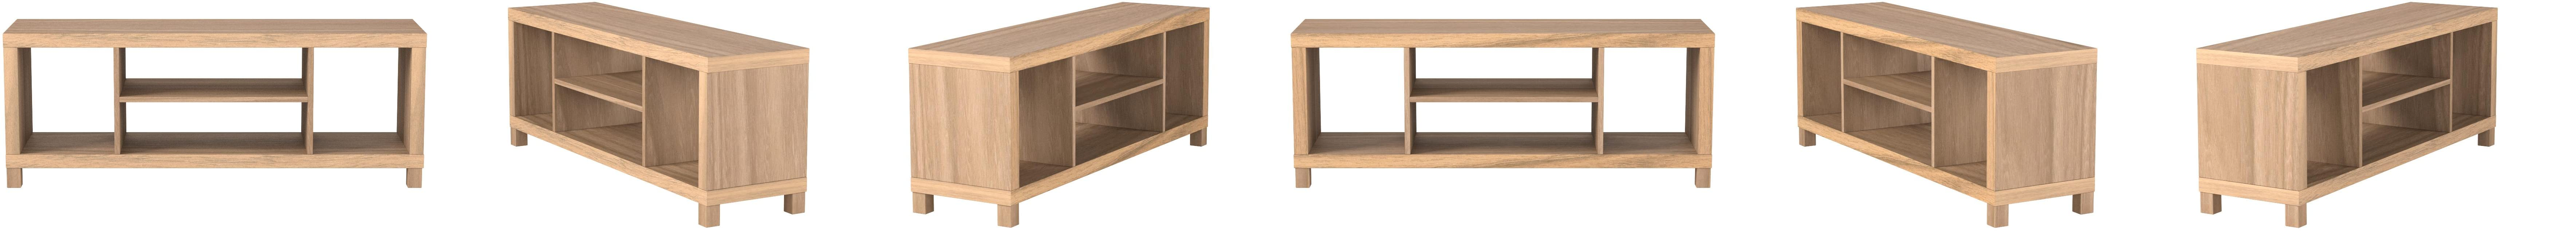 Black Cross Mill TV Stand15.67 x 47.80 x 19.60 Inches Generic